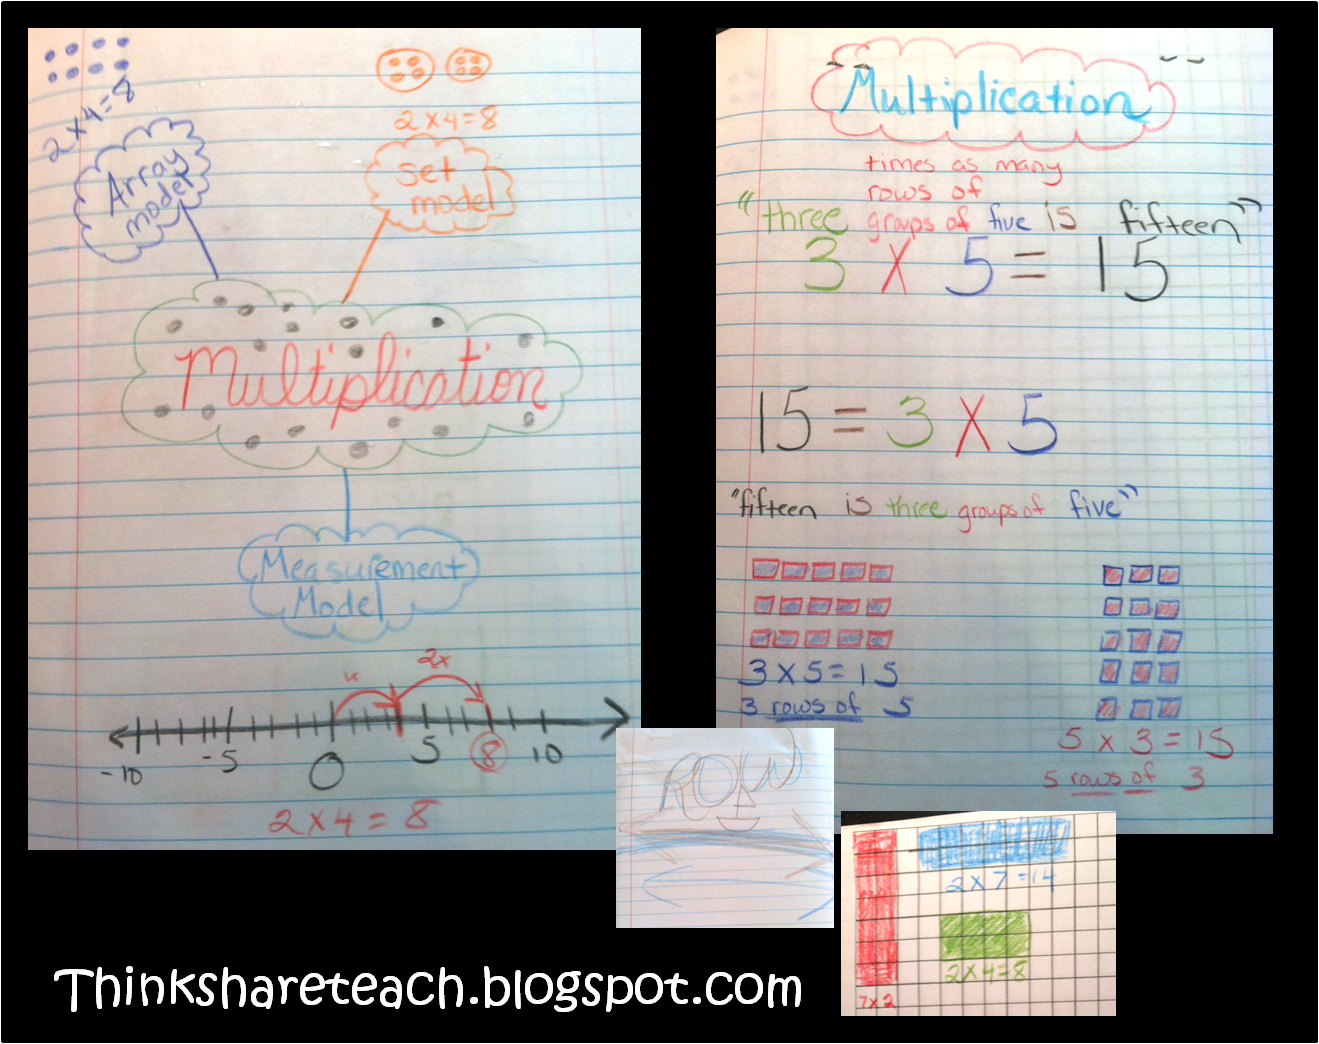 Multiplication Math Journal Goodness | Think * Share * Teach